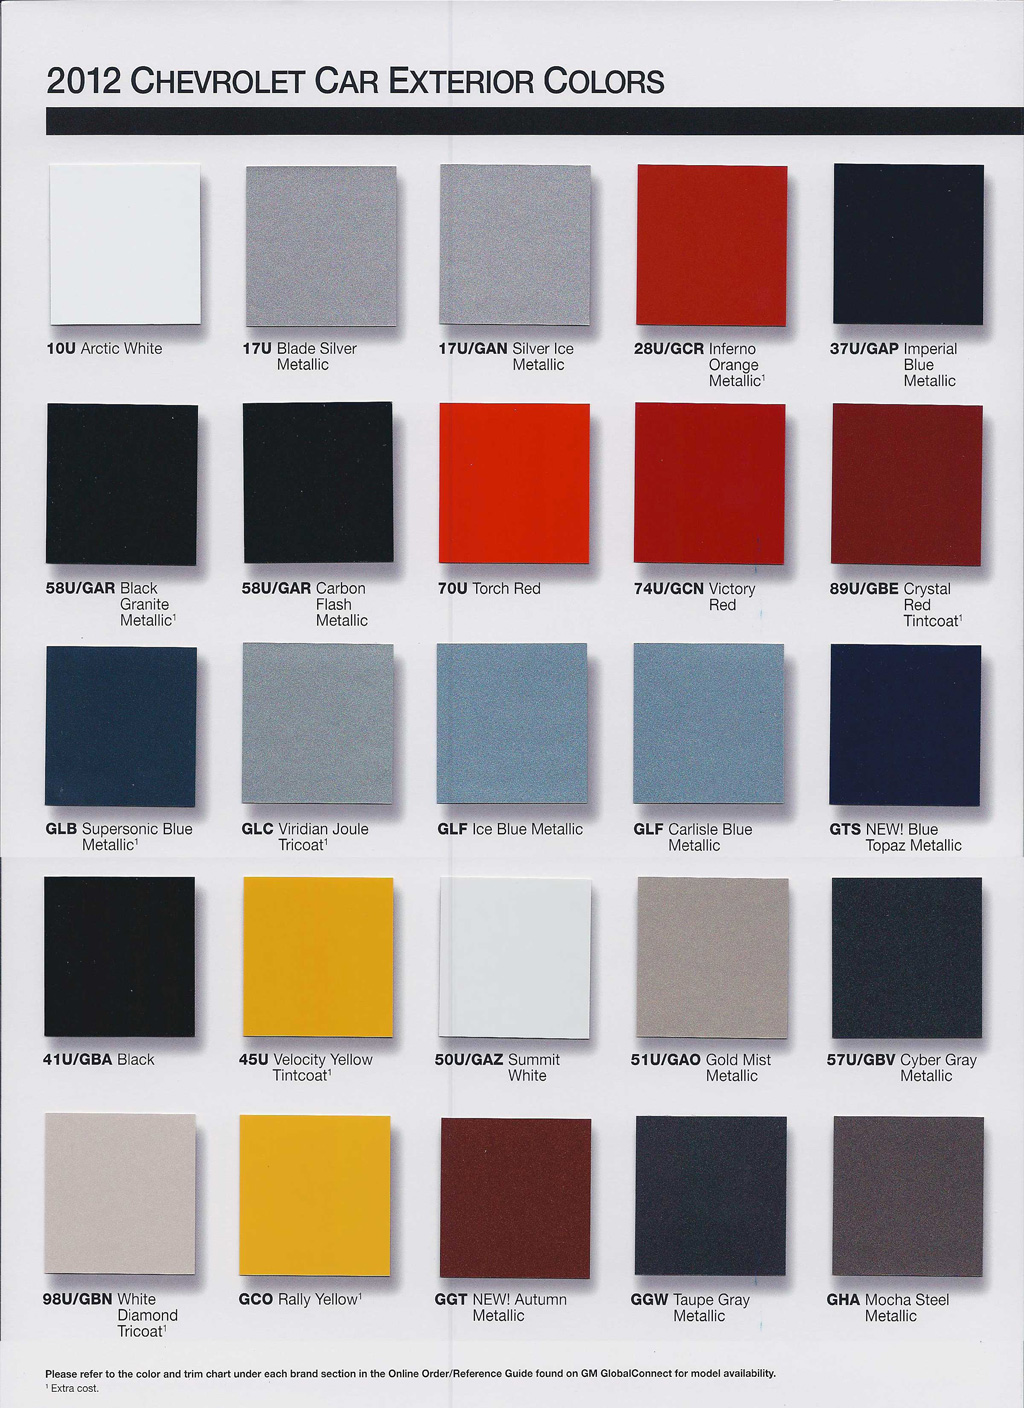 2014 Chevrolet Color Chart.html | Autos Weblog